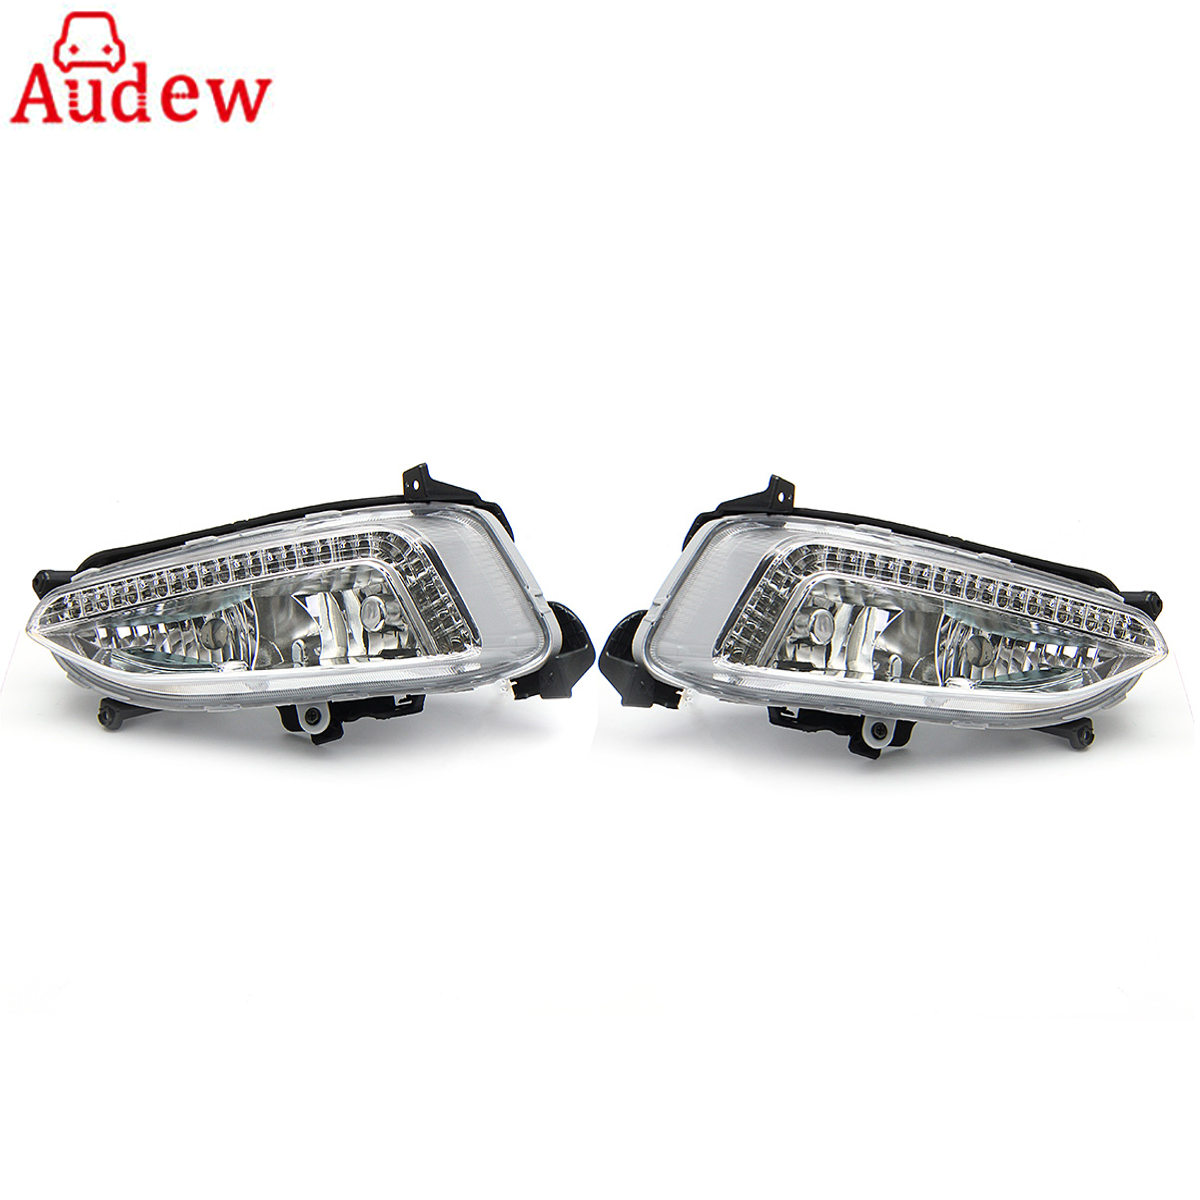 1Pair LED Car Light Assembly DRL Daytime Running Light Fog Lamp For Hyundai IX45 Santa Fe 2013 2014 DC 12V 5500K~6500K new arrival a pair 10w pure white 5630 3 smd led eagle eye lamp car back up daytime running fog light bulb 120lumen 18mm dc12v